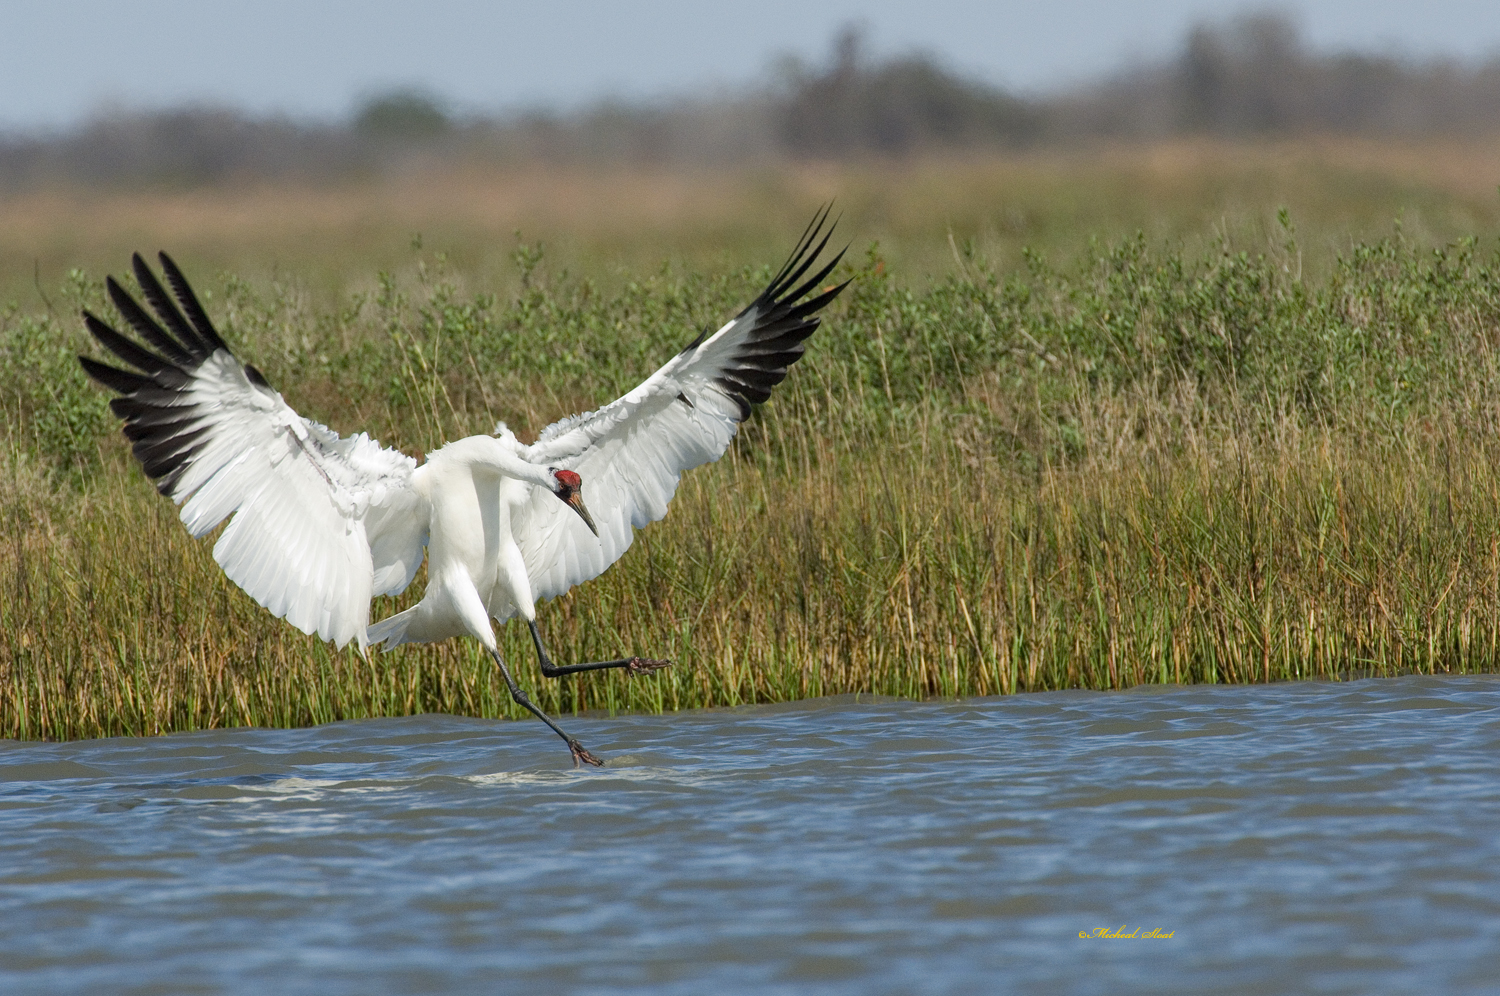 Attention, Birders: The Whooping Crane Festival in Port Aransas, Texas Is Next Month